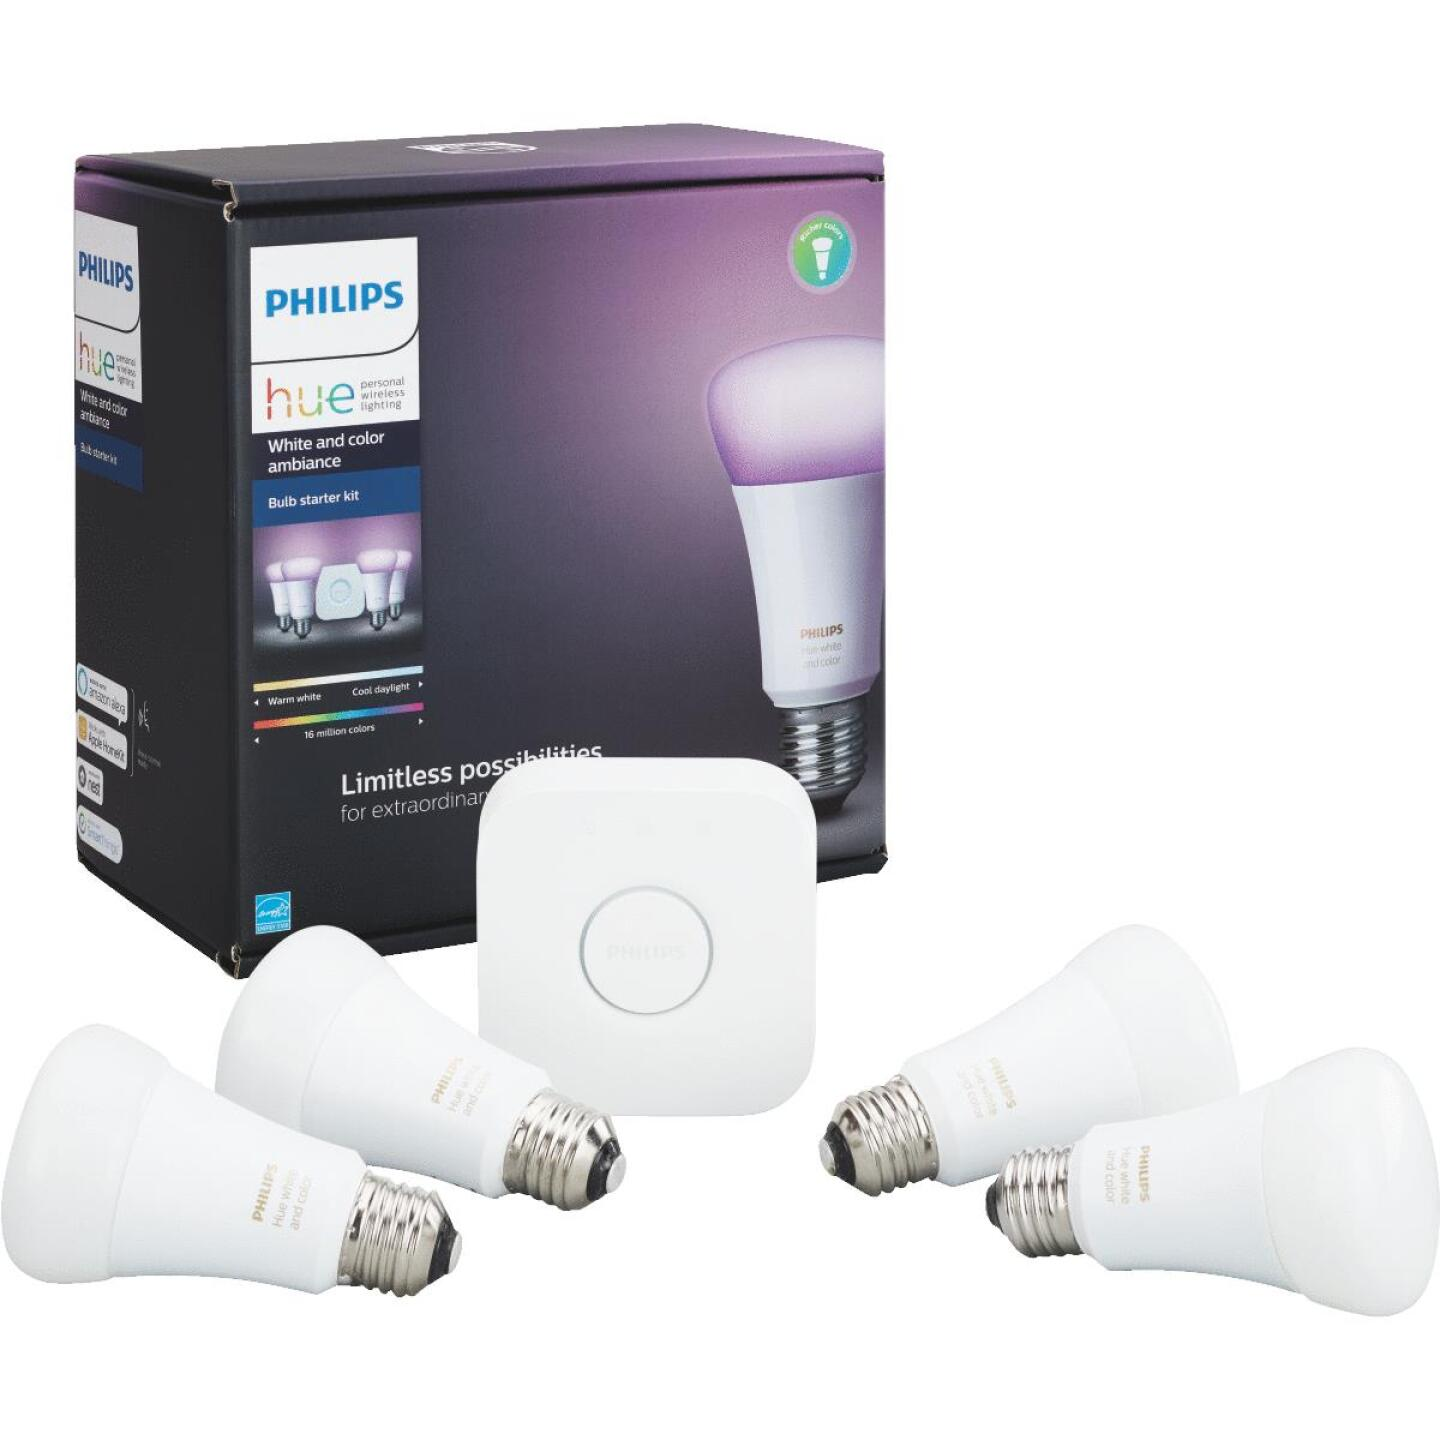 Philips Hue White & Color Ambiance 60W Equivalent Medium A19 Dimmable LED Light Bulb Starter Kit Image 1